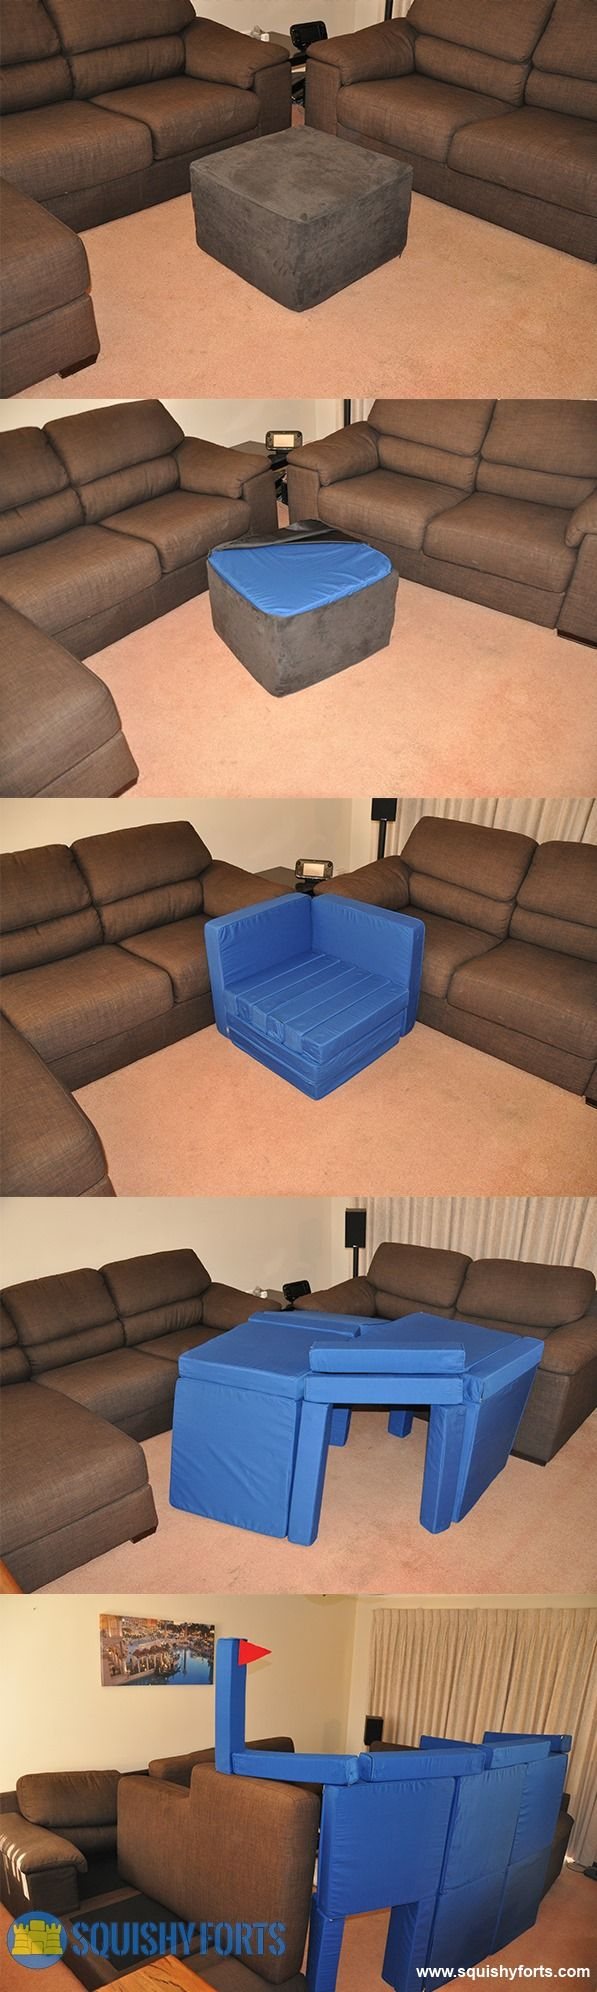 A foot stool that is actually a Pillow Fort Construction kit. Okay I'm sorry but I need this.